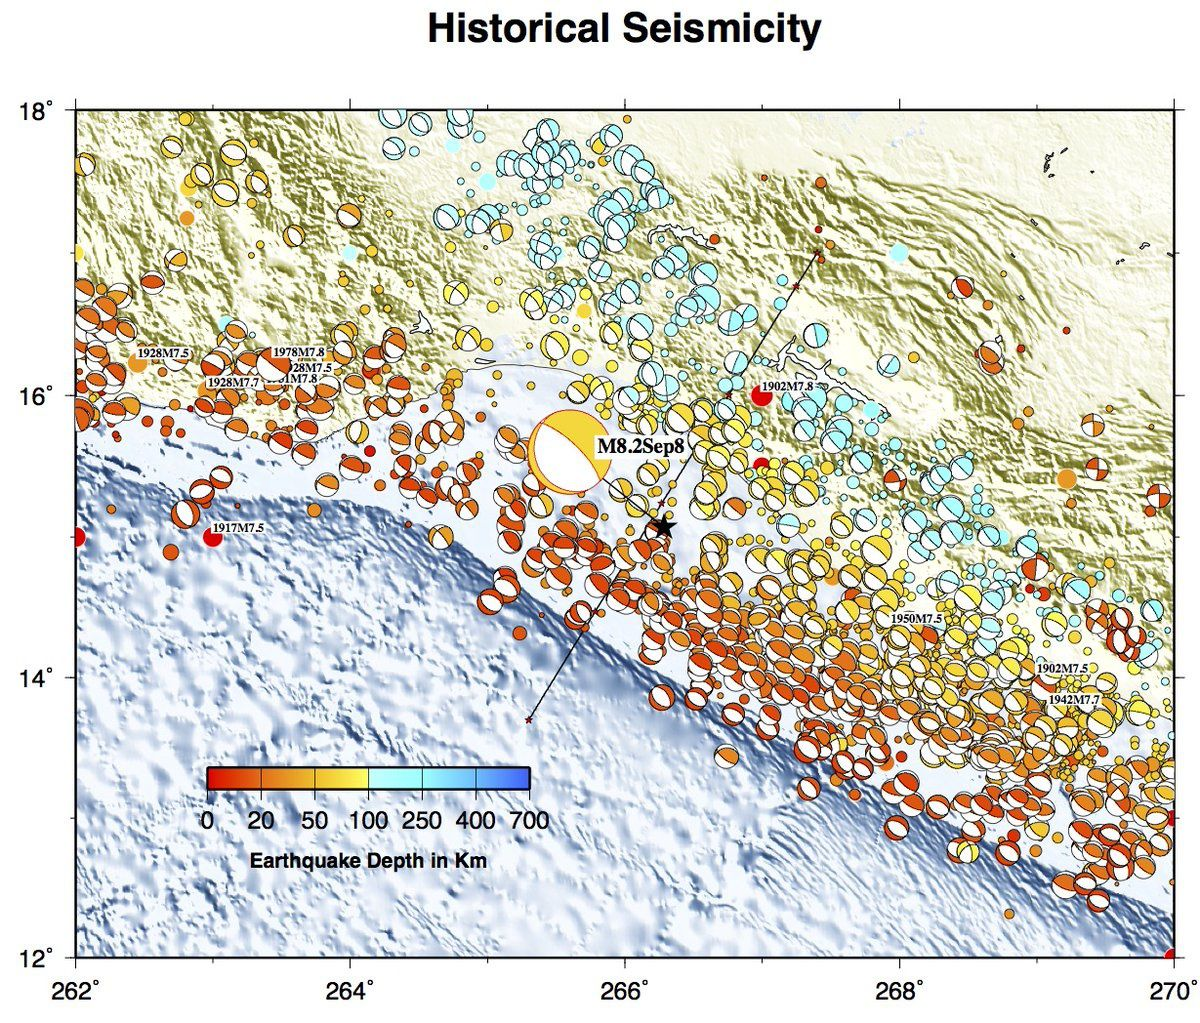 Historical seismicity in the Mexico's southern coast. (Figure modified from USGS by Jascha Polet) / CSEM.